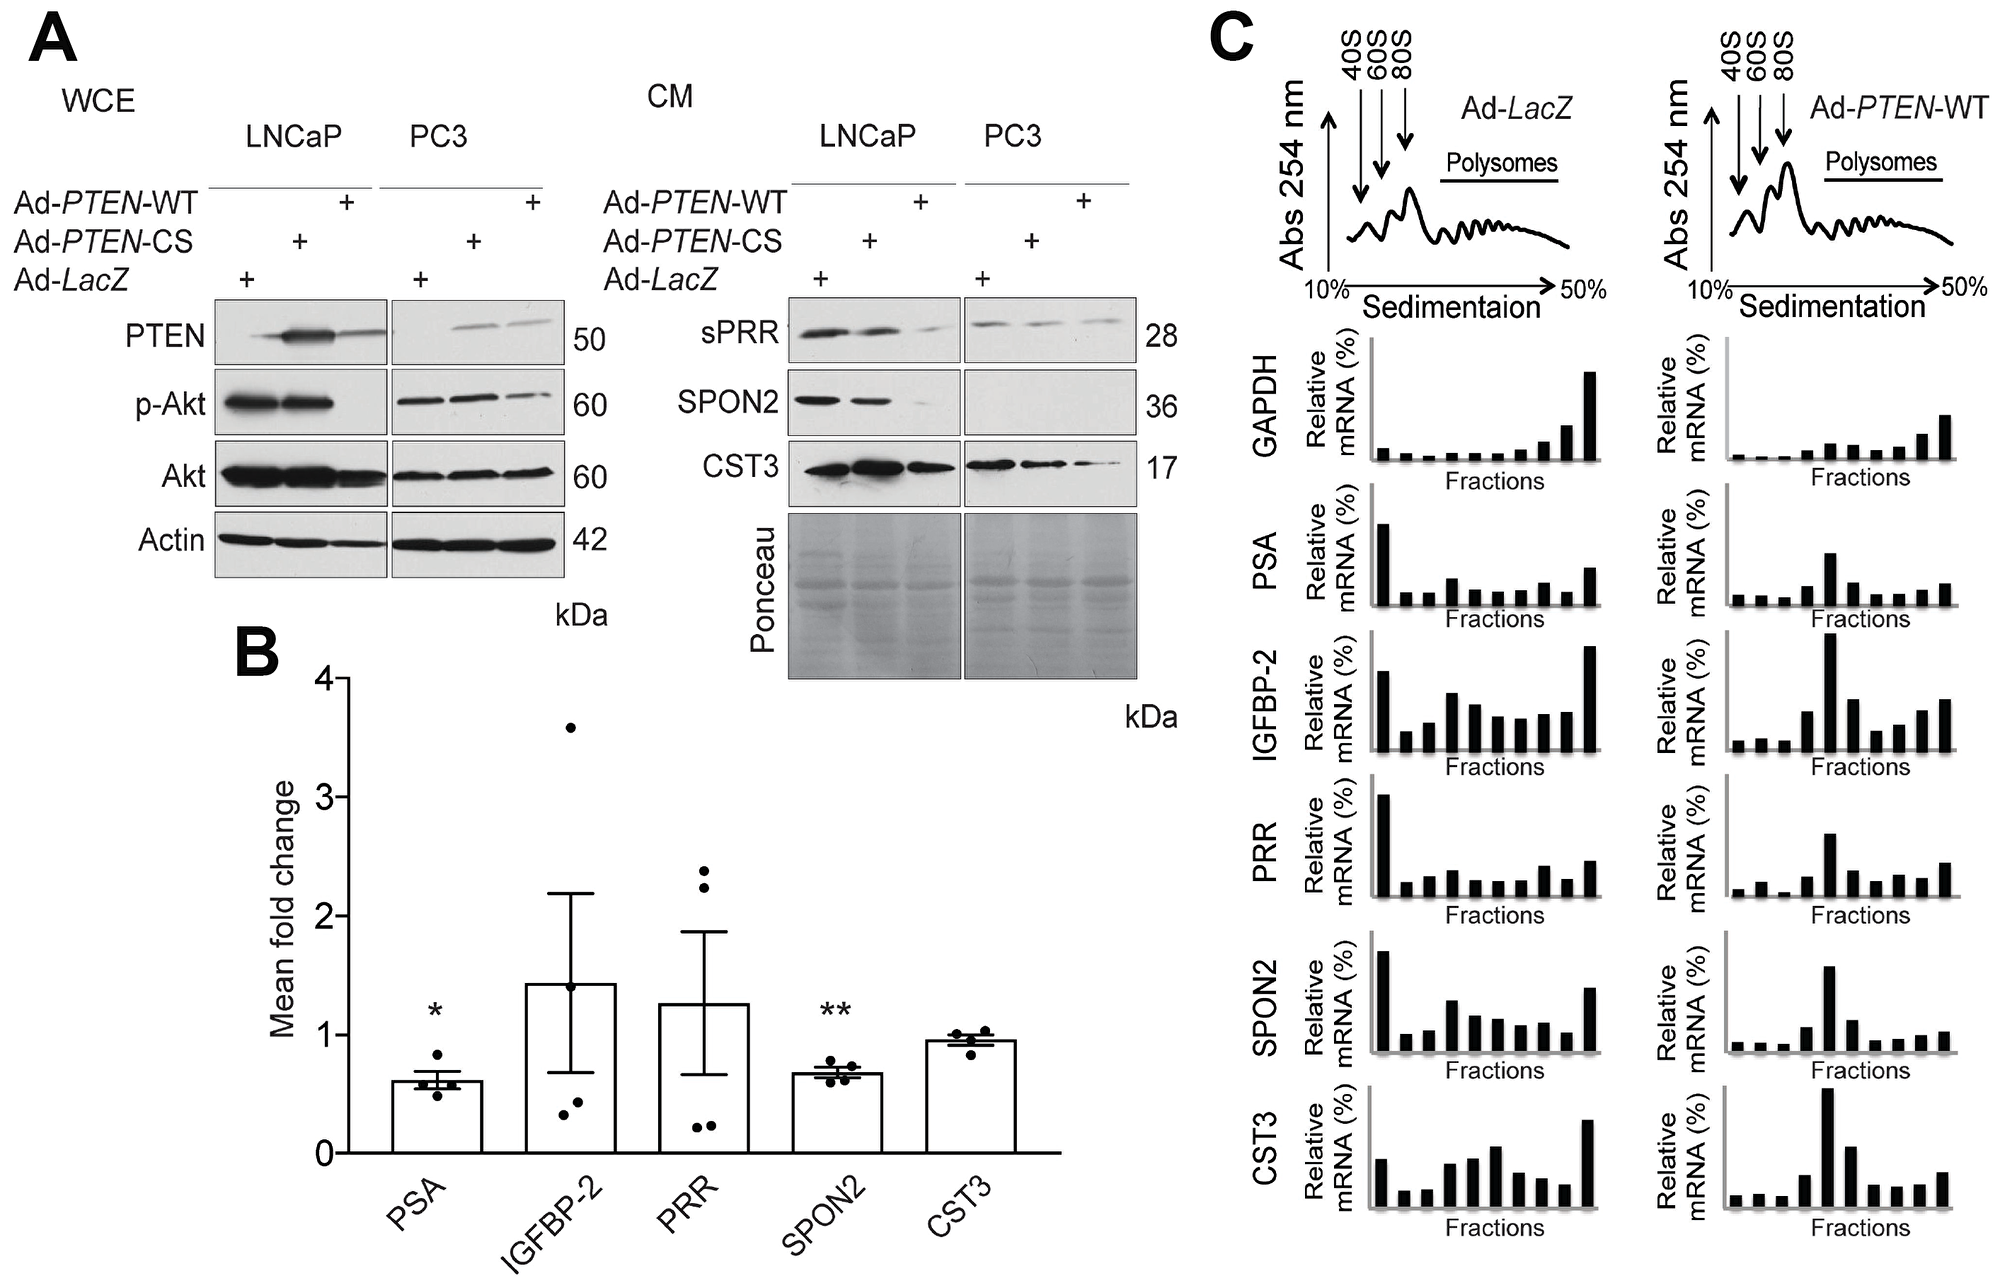 PTEN regulates expression of secreted factors at the translational and transcriptional levels.